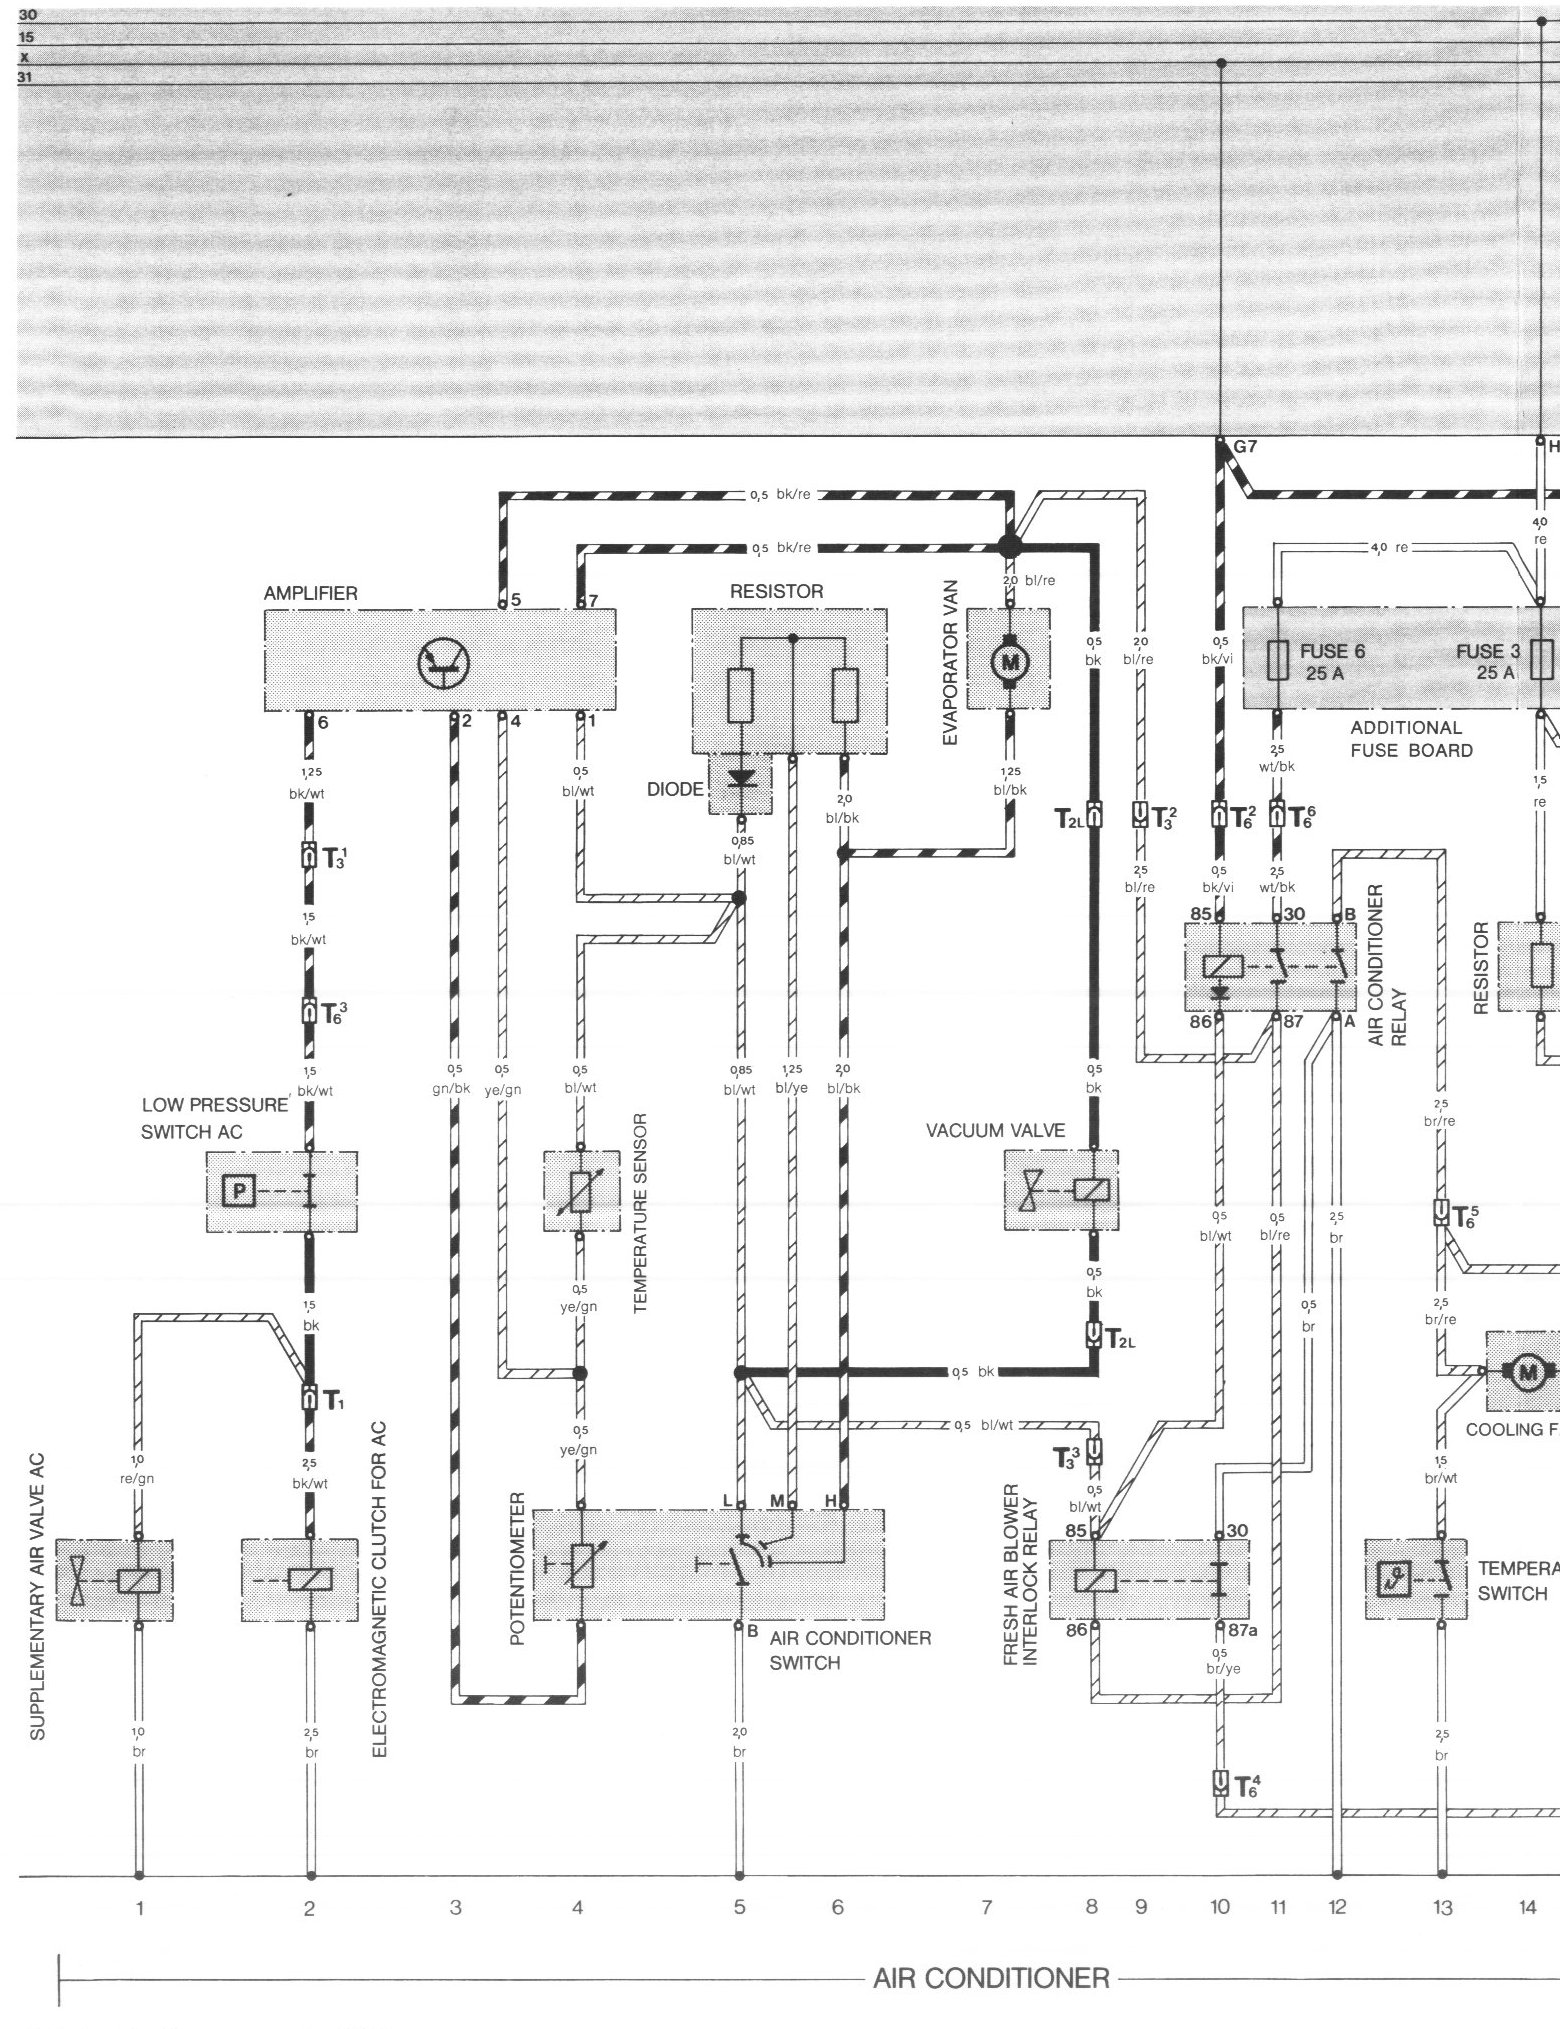 Pelican Parts Porsche 924 944 Electrical Diagrams Ac Track Circuit Wiring Diagram A C Page 1